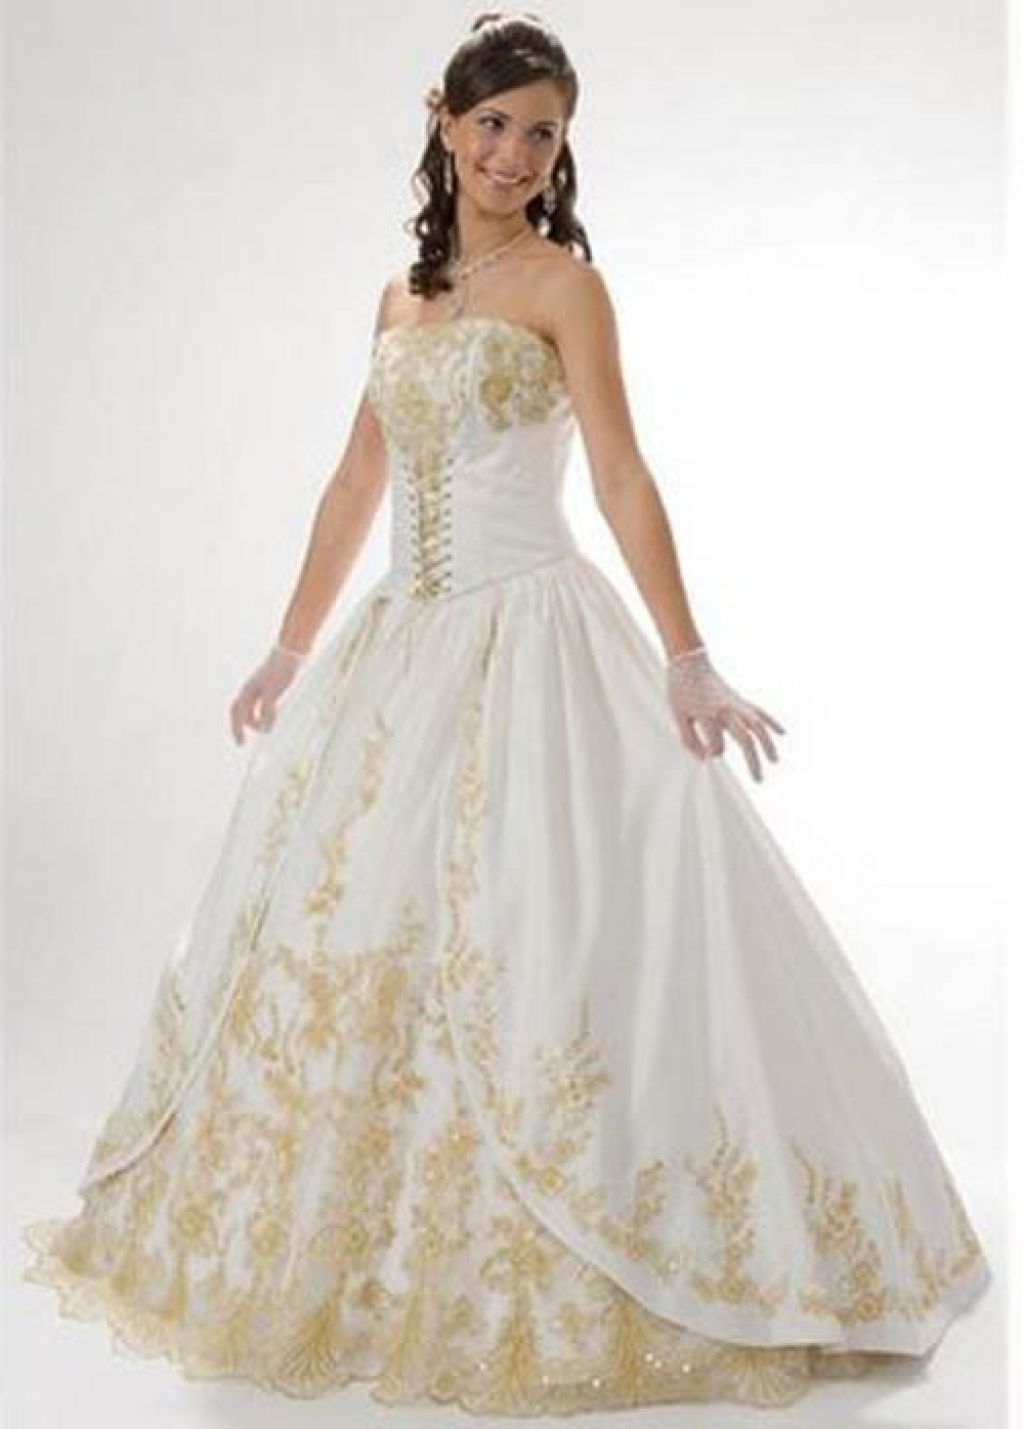 White And Gold Wedding Dress | Gold Wedding Dresses | Pinterest ...